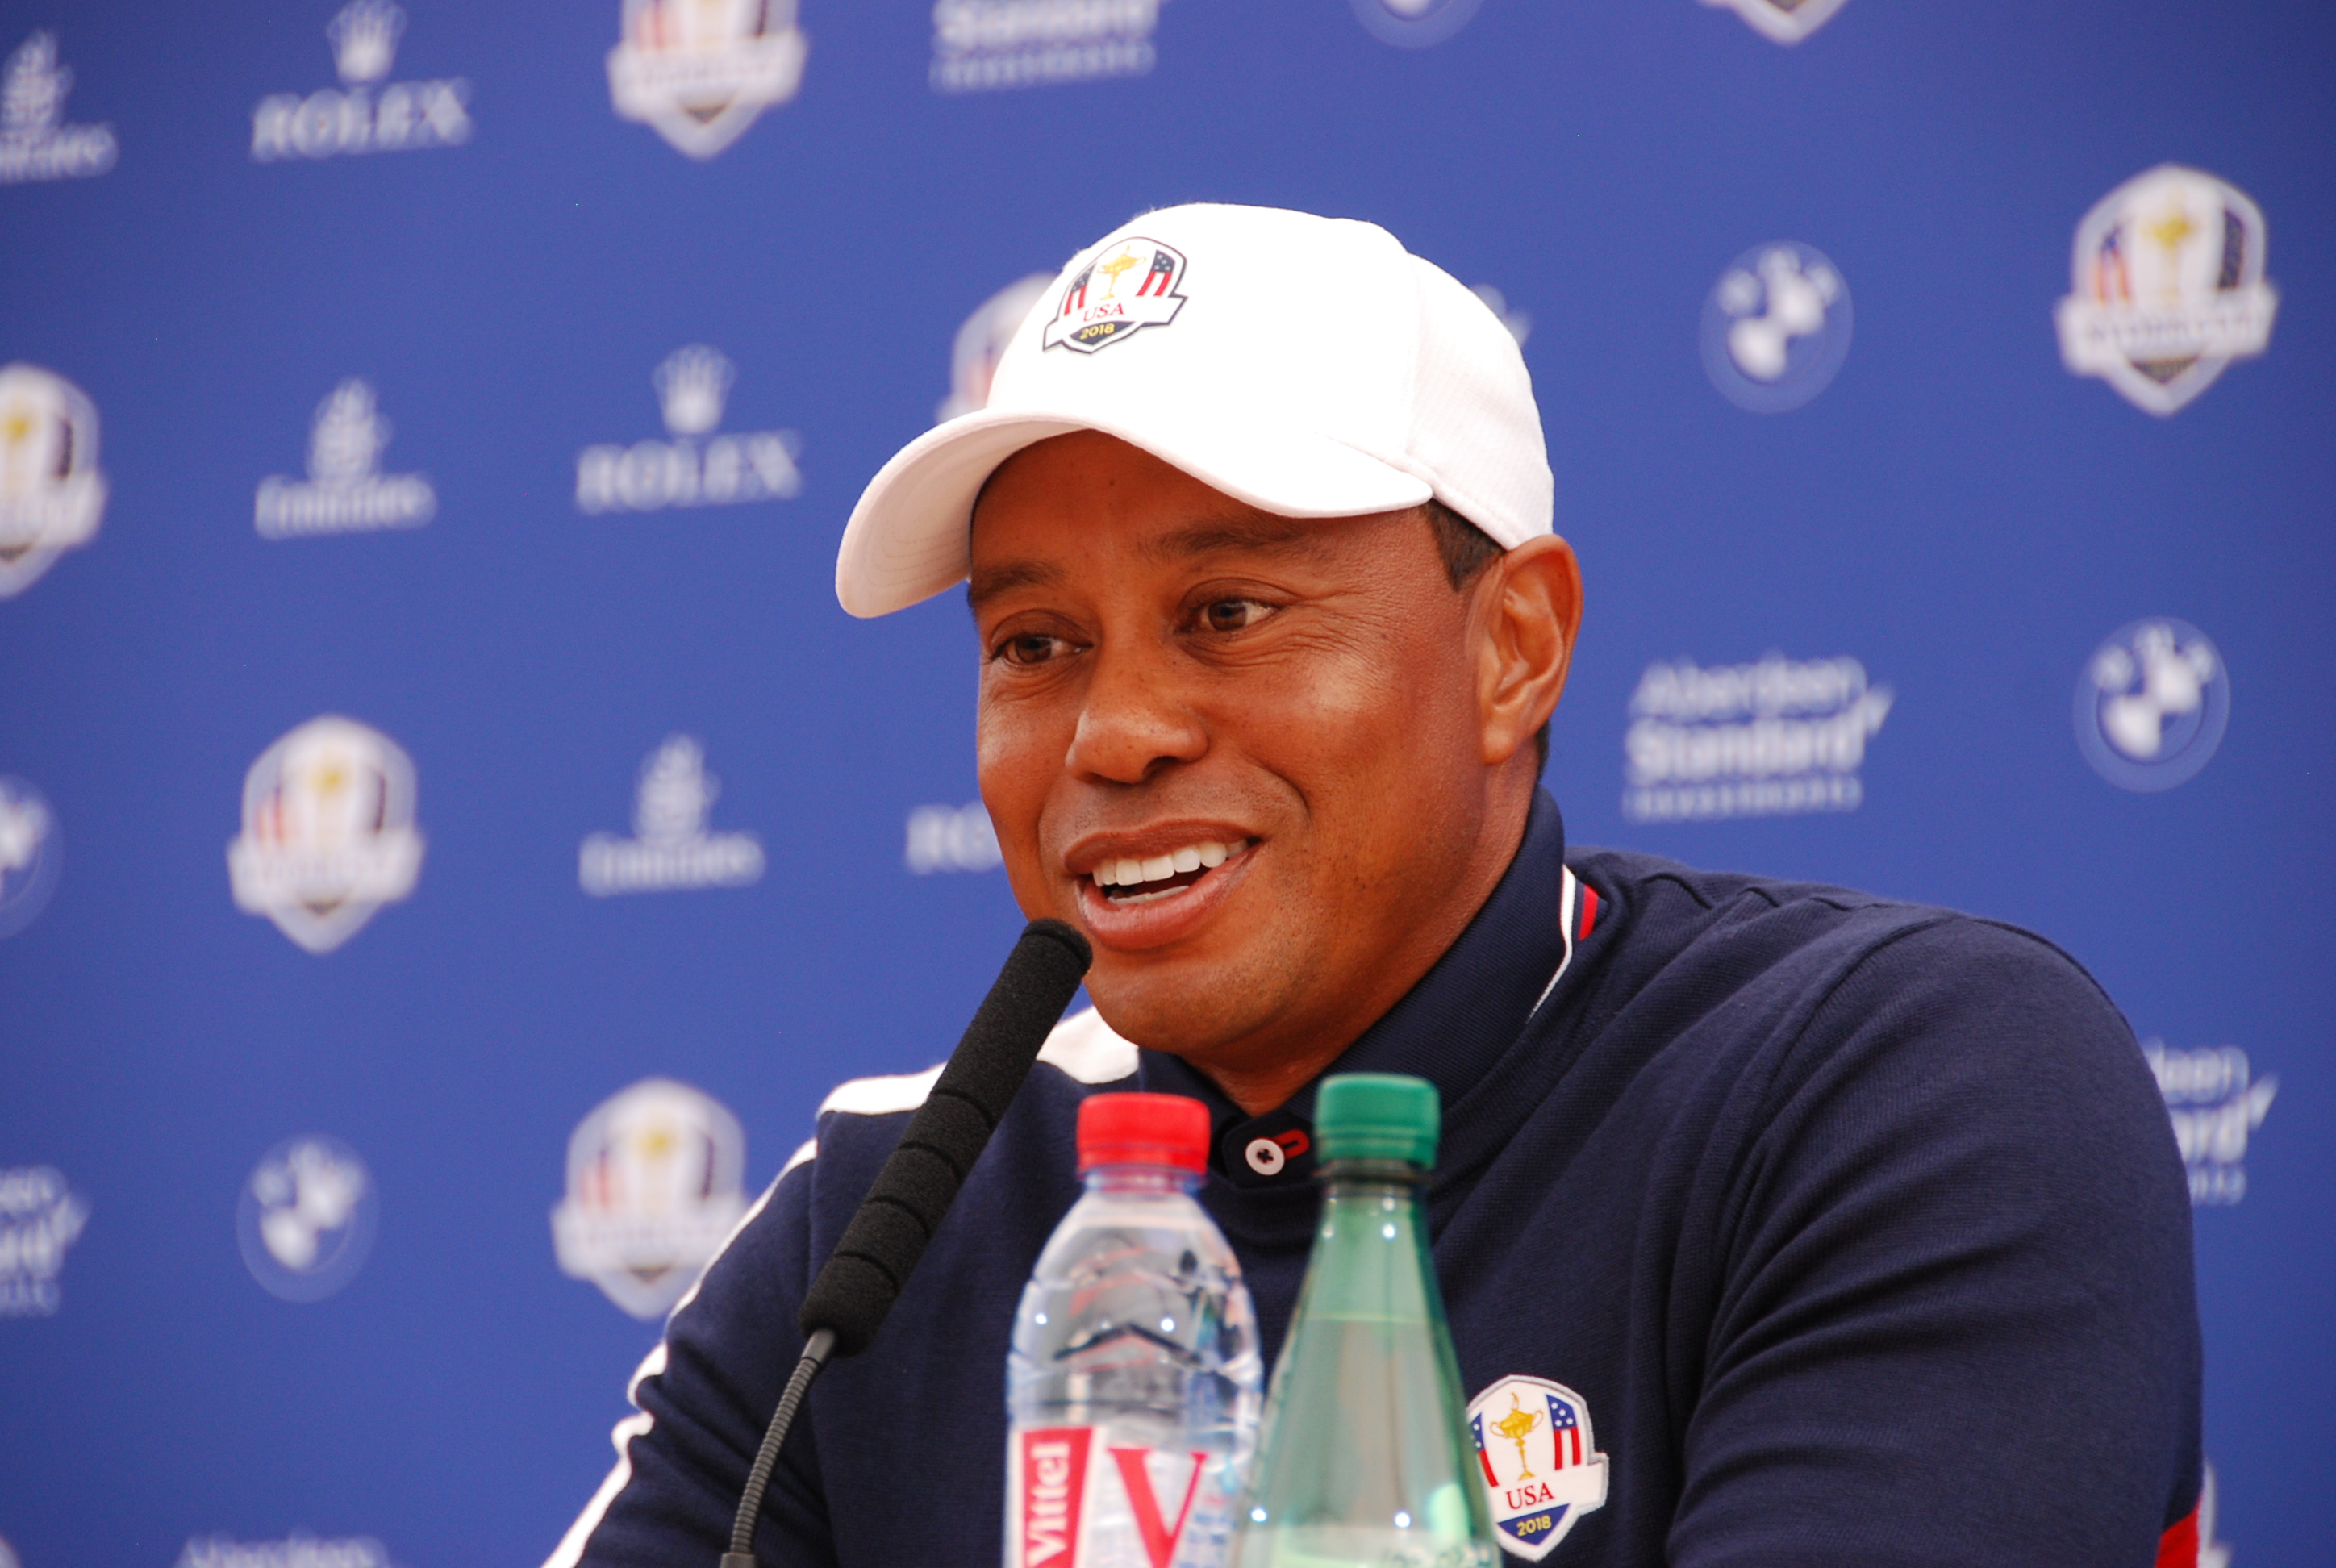 Tiger Woods, une icone du golf à la Ryder Cup 2018 en France